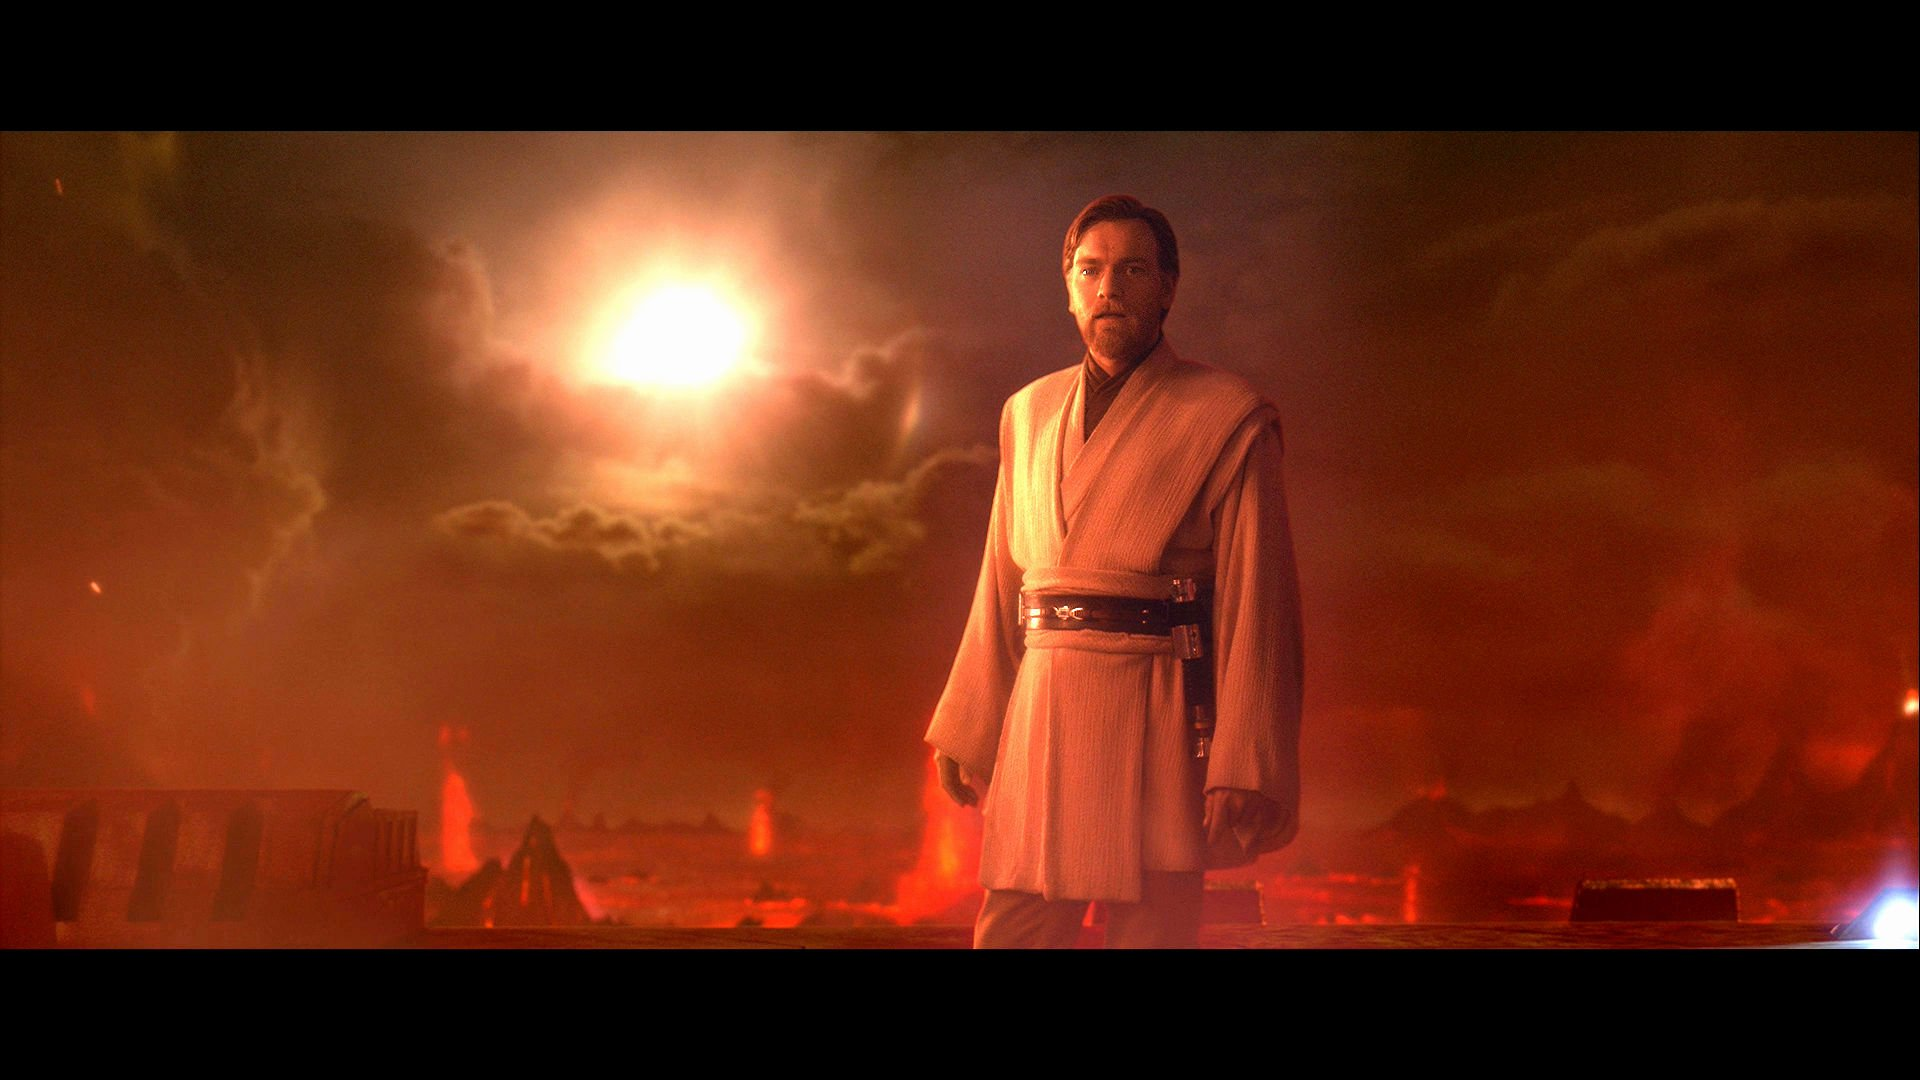 Revenge Of The Sith Wallpaper: Download Star Wars Revenge Of The Sith Wallpapers Gallery